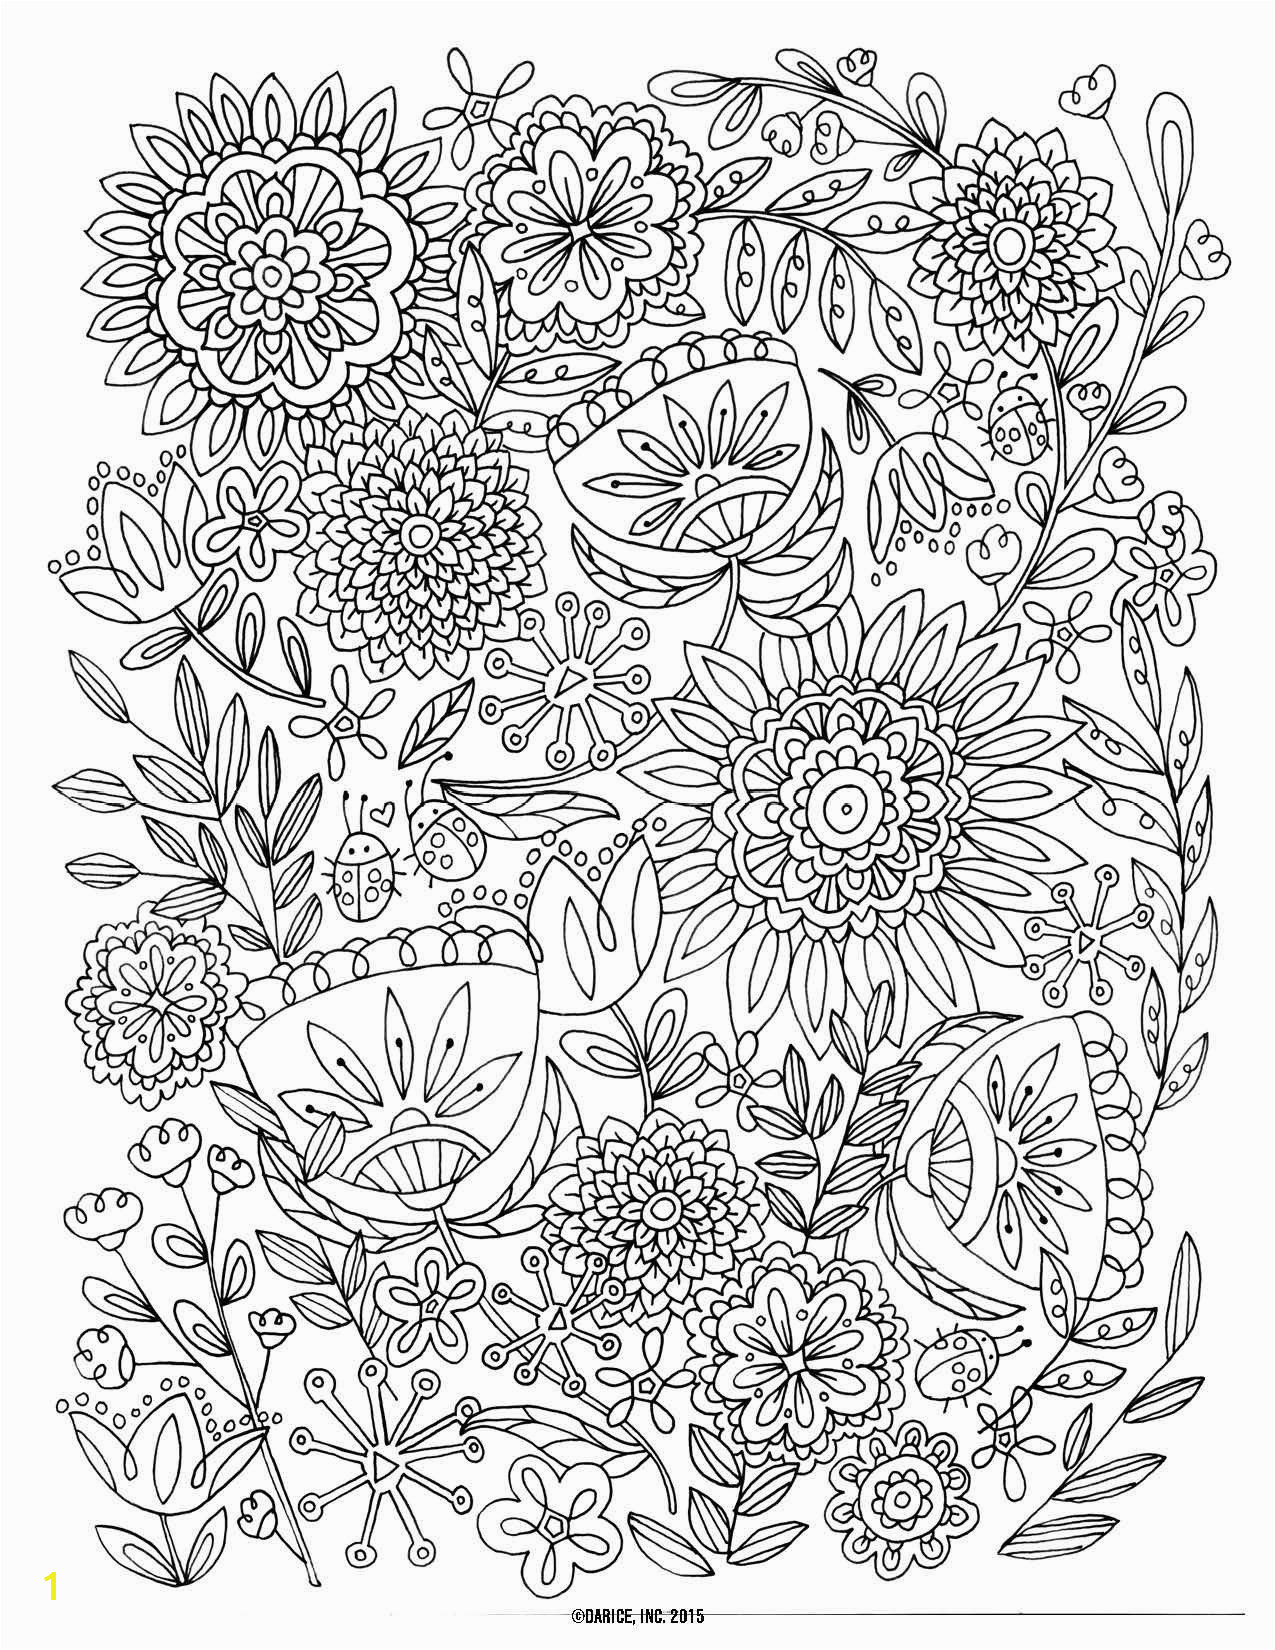 Free Monkey Coloring Pages Coloring Line Free Fresh Coloring Pages Line New Line Coloring 0d